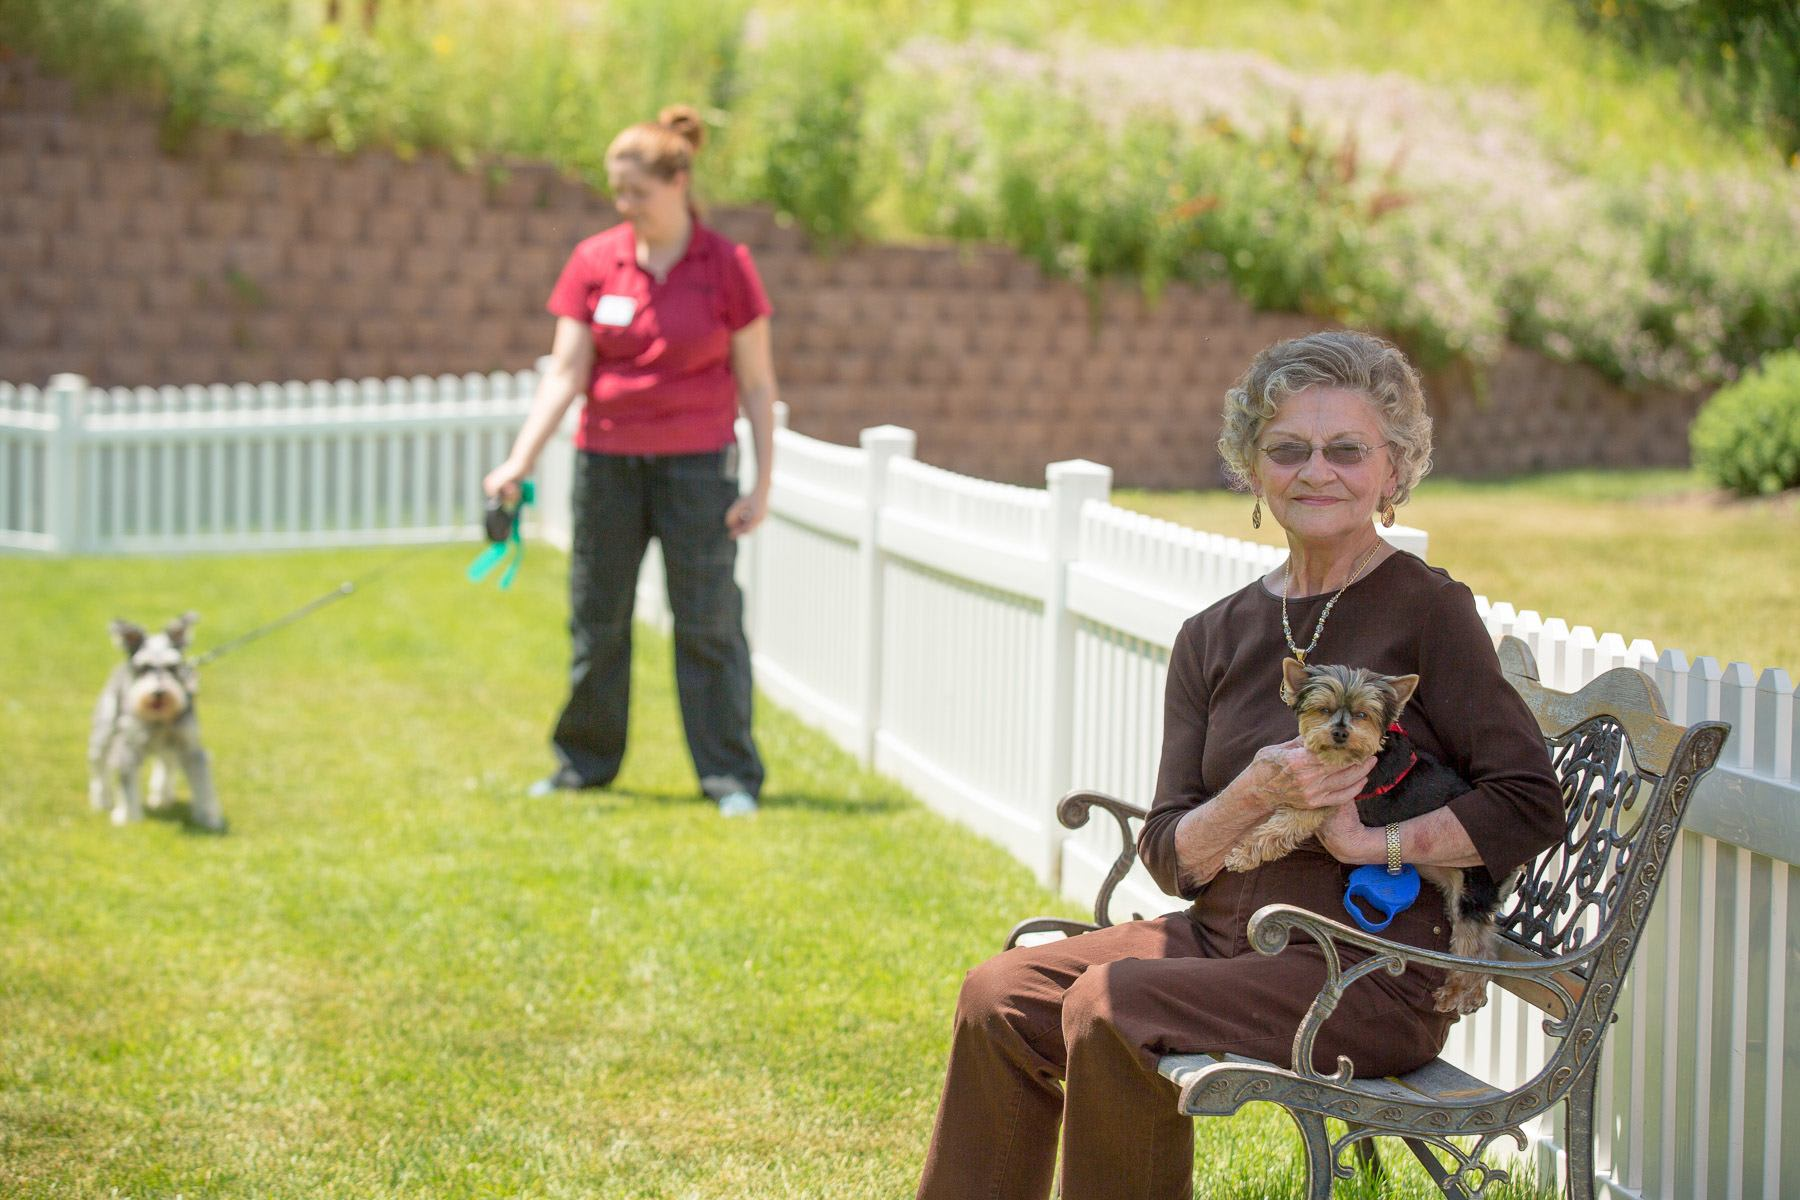 Pet friendly nursing home in Bellevue, ne